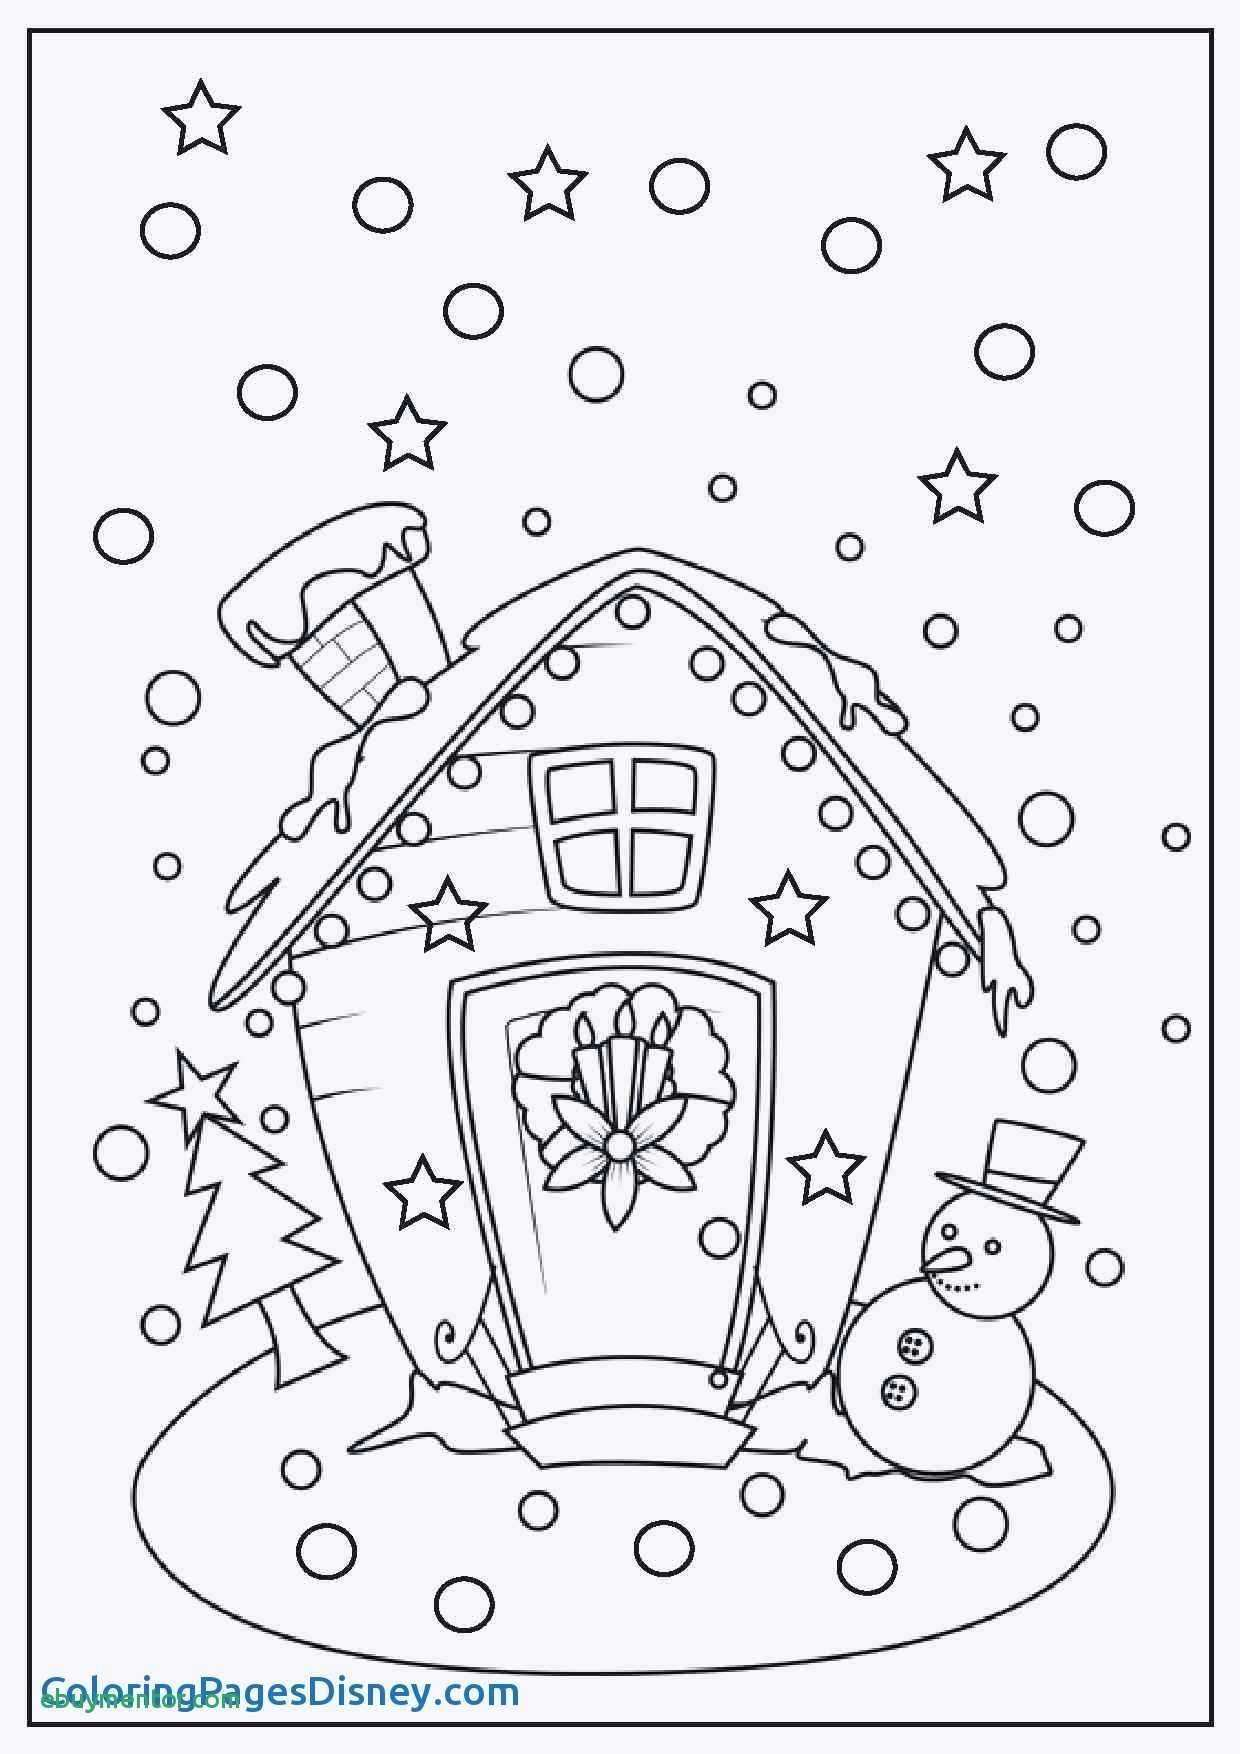 Christmas Coloring Pages For 10 Year Olds With Free Printable Jesus Awesome 25